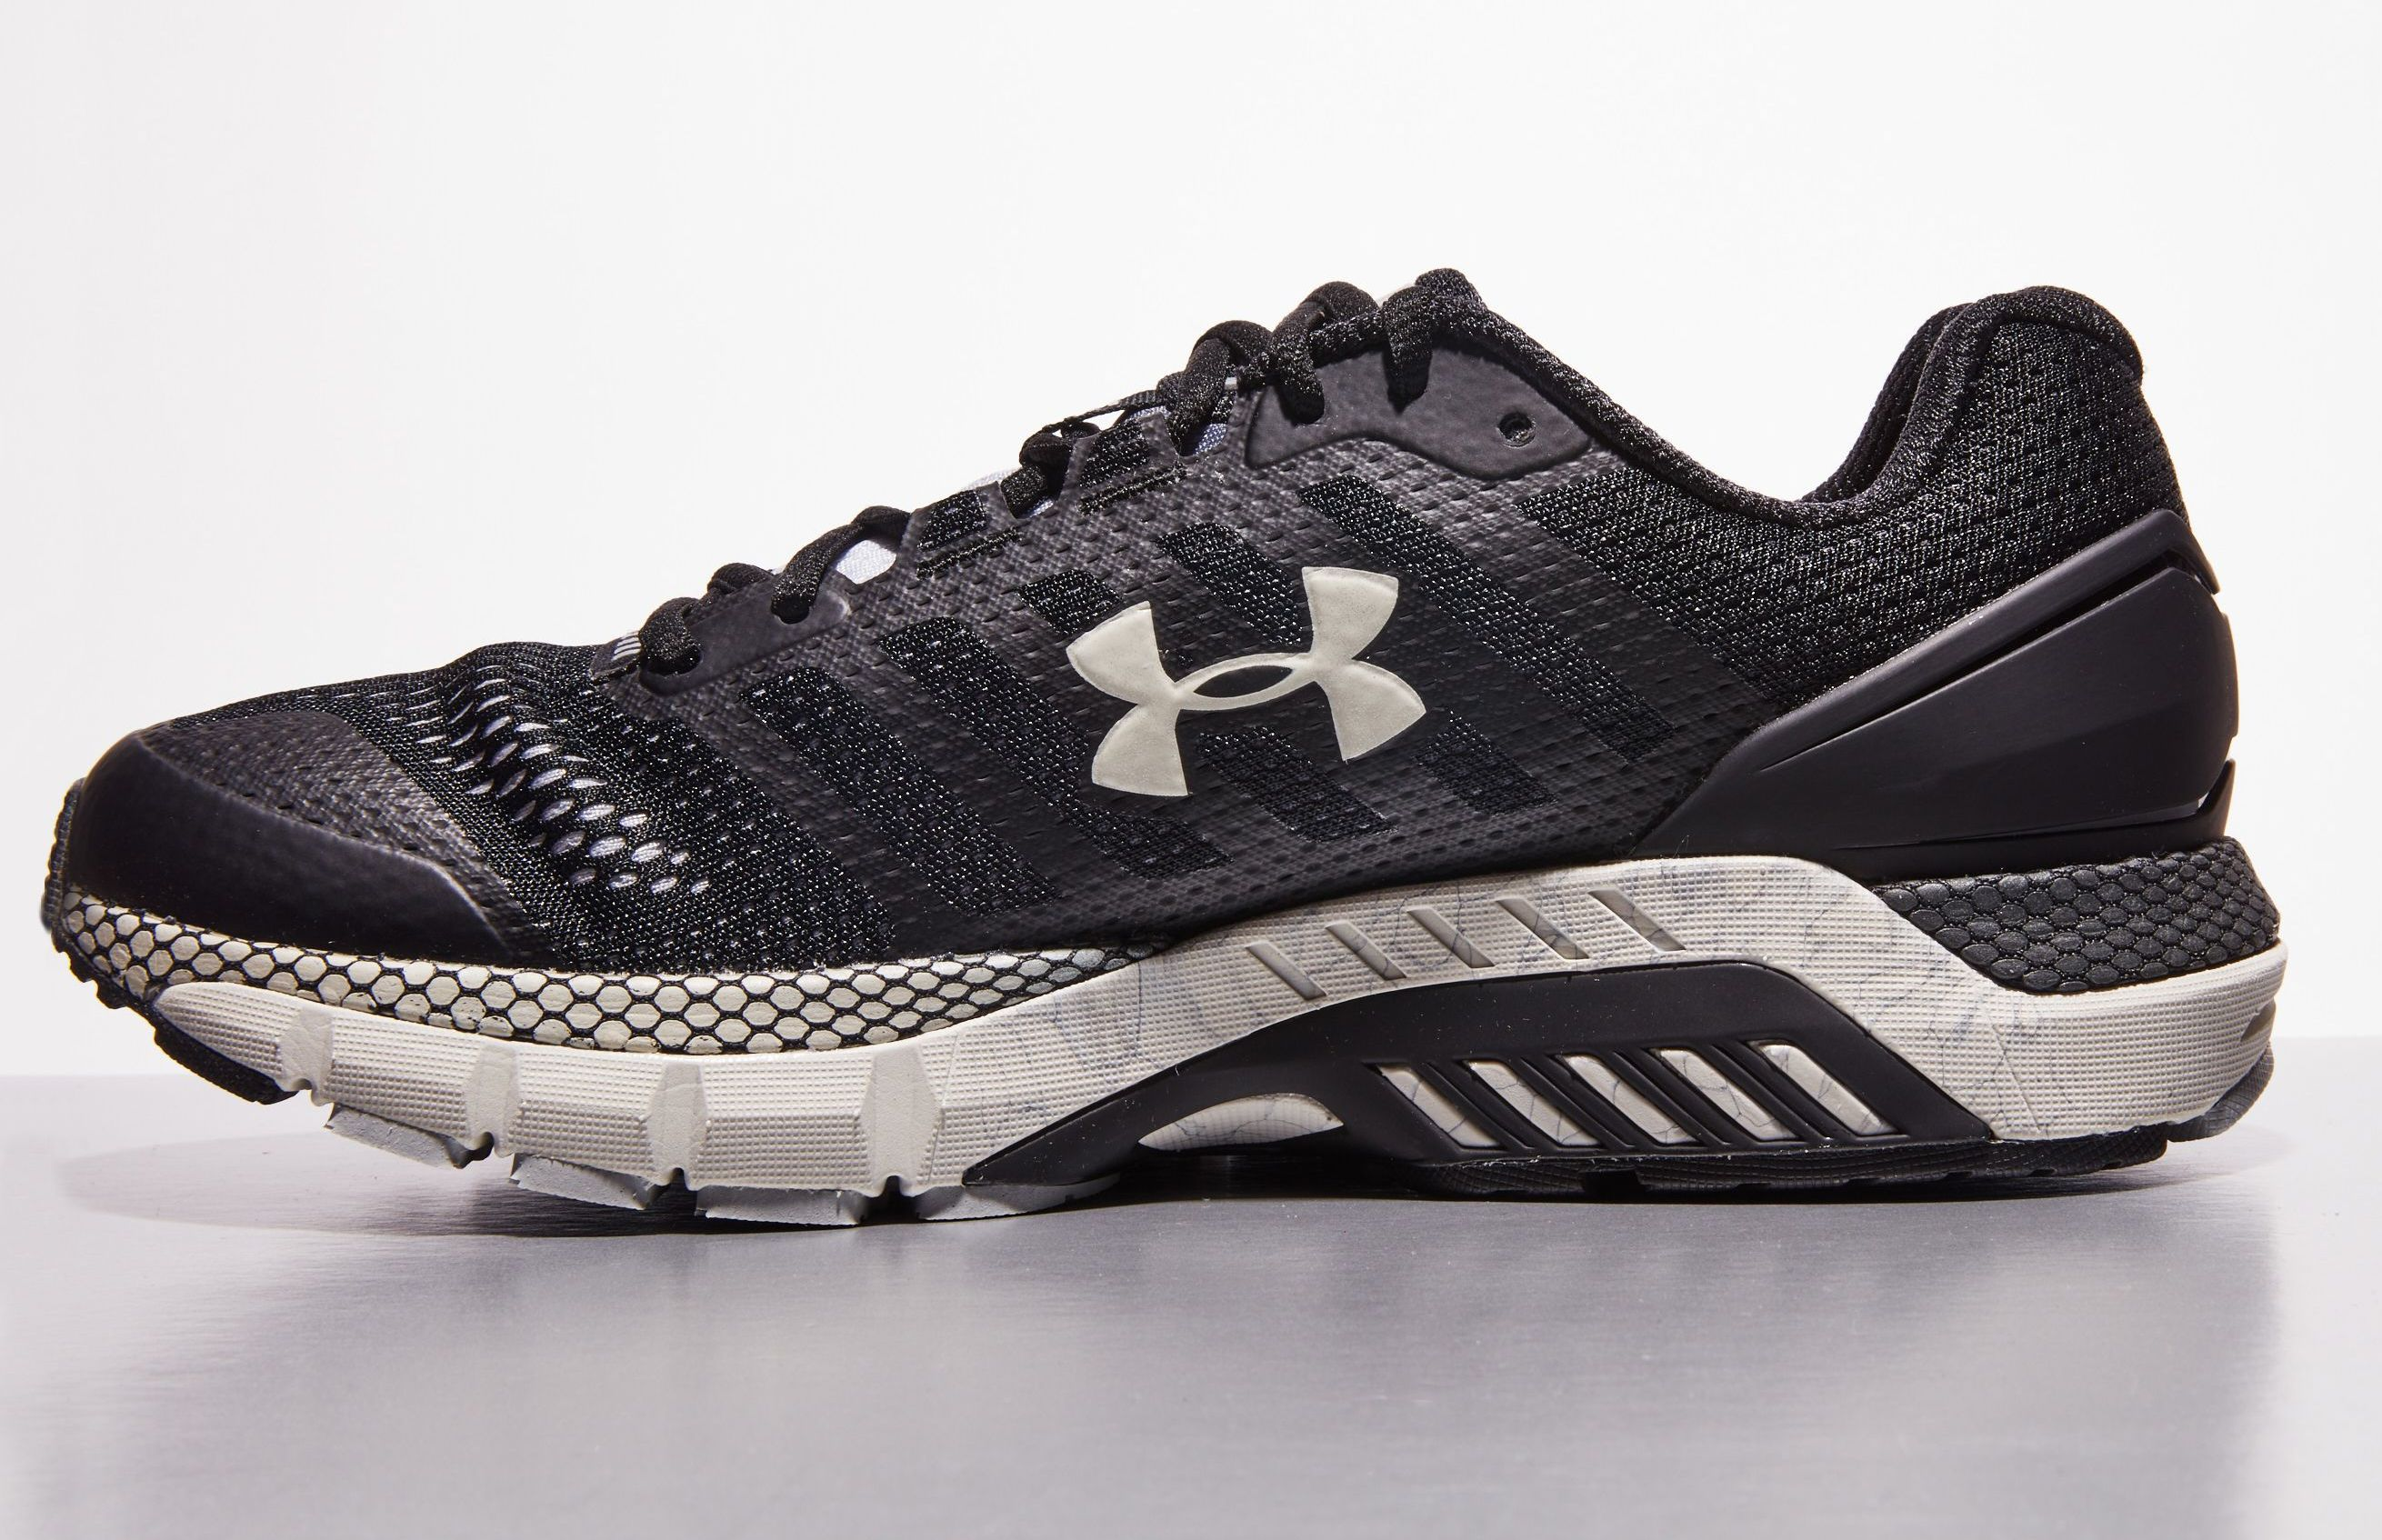 4d04522bcd Under Armour Hovr Guardian — Stability Running Shoe Review